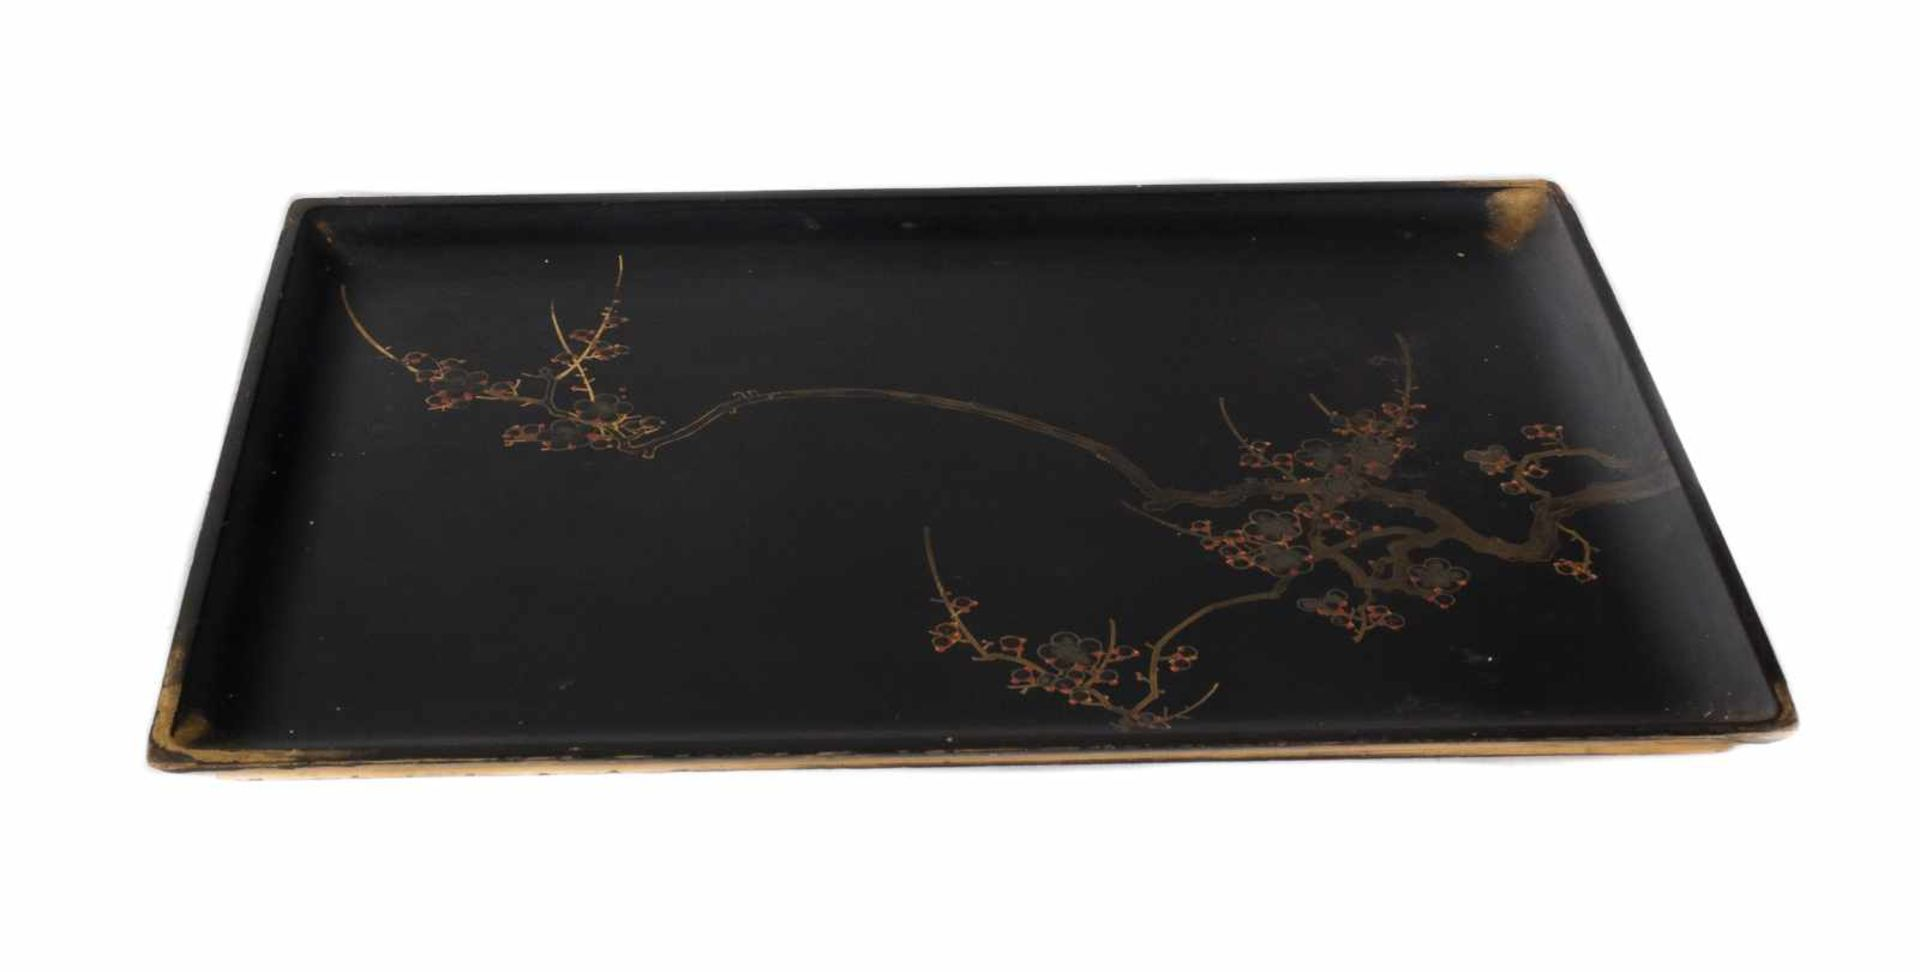 Los 58 - A Japanese gilt and black lacquer rectangular tray, depicting blossoming cherry tree branches. Meiji